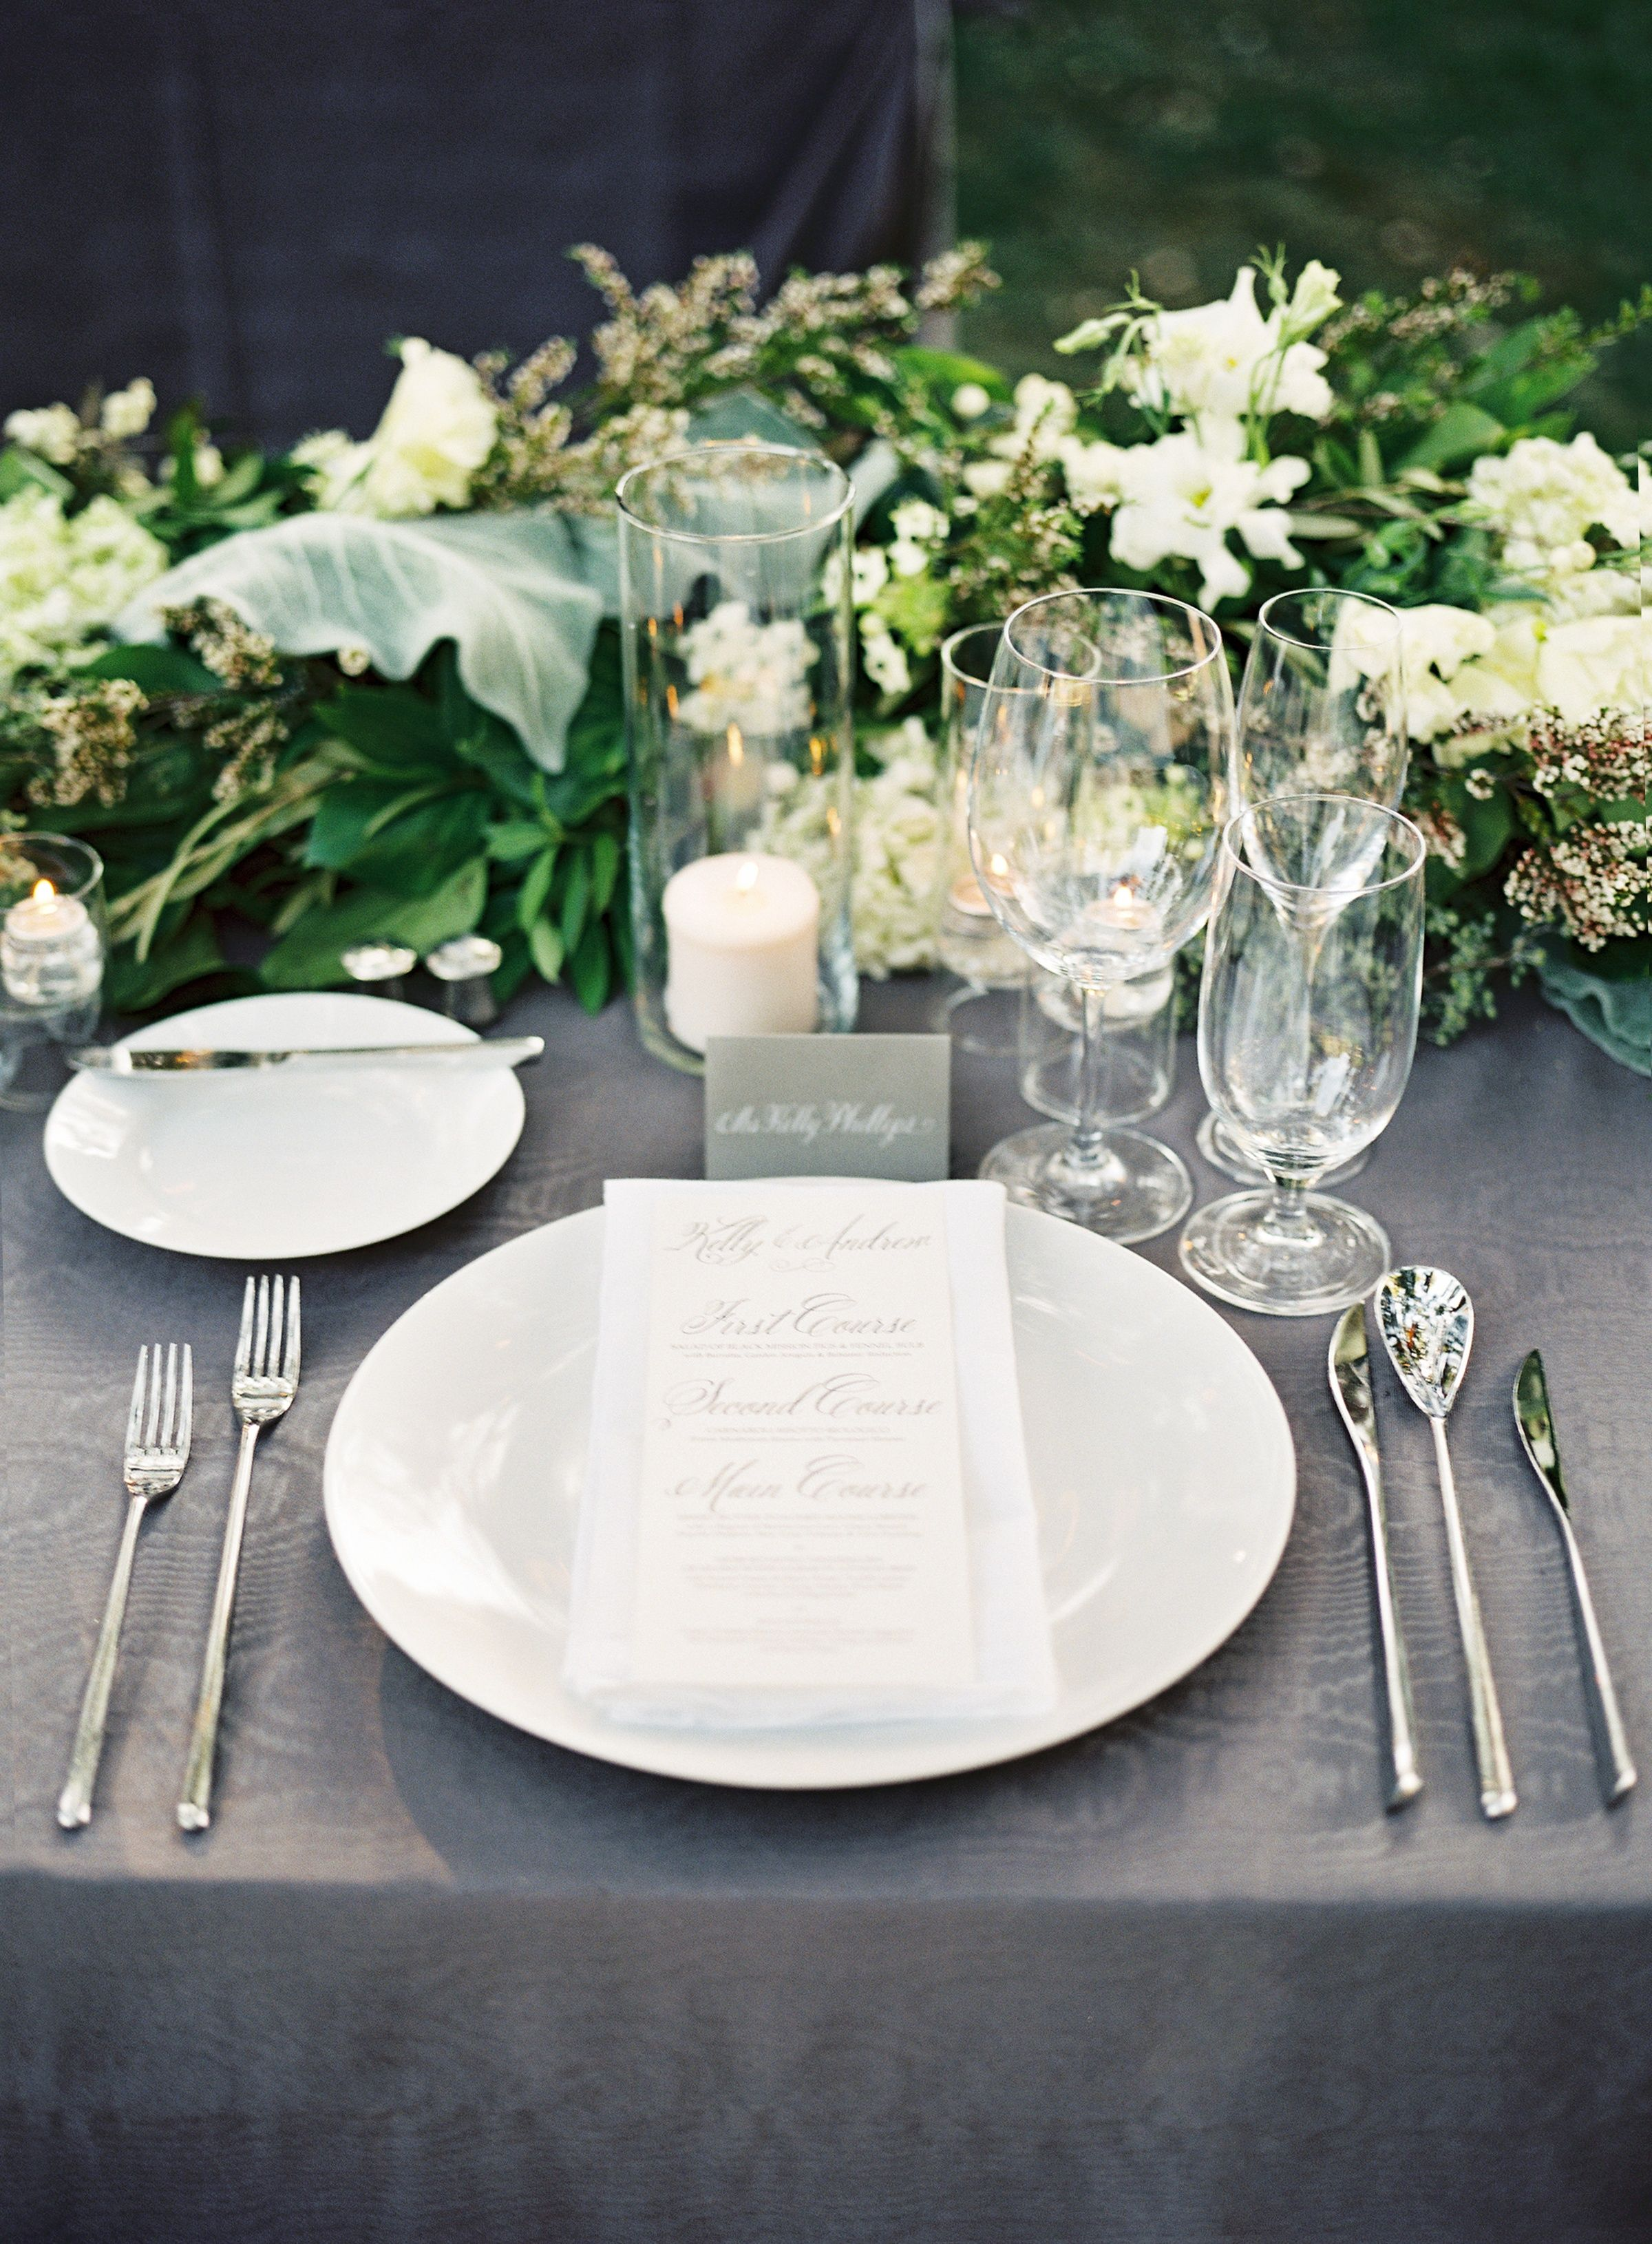 Elegant Gray And White Place Settings Steve Steinhardt